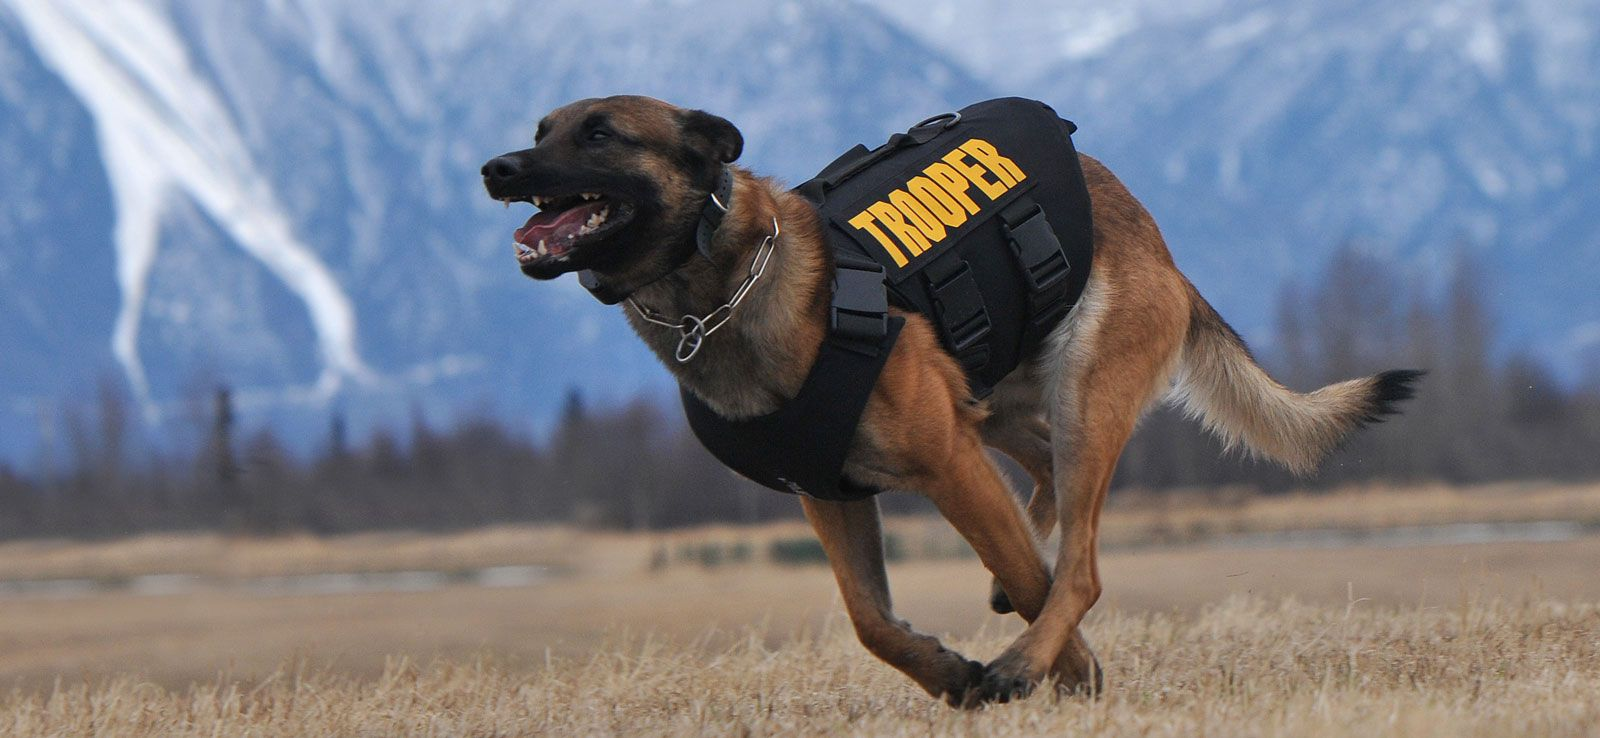 Vested Interest In K9s Inc Ways To Support Supportive Police Dogs All Hero